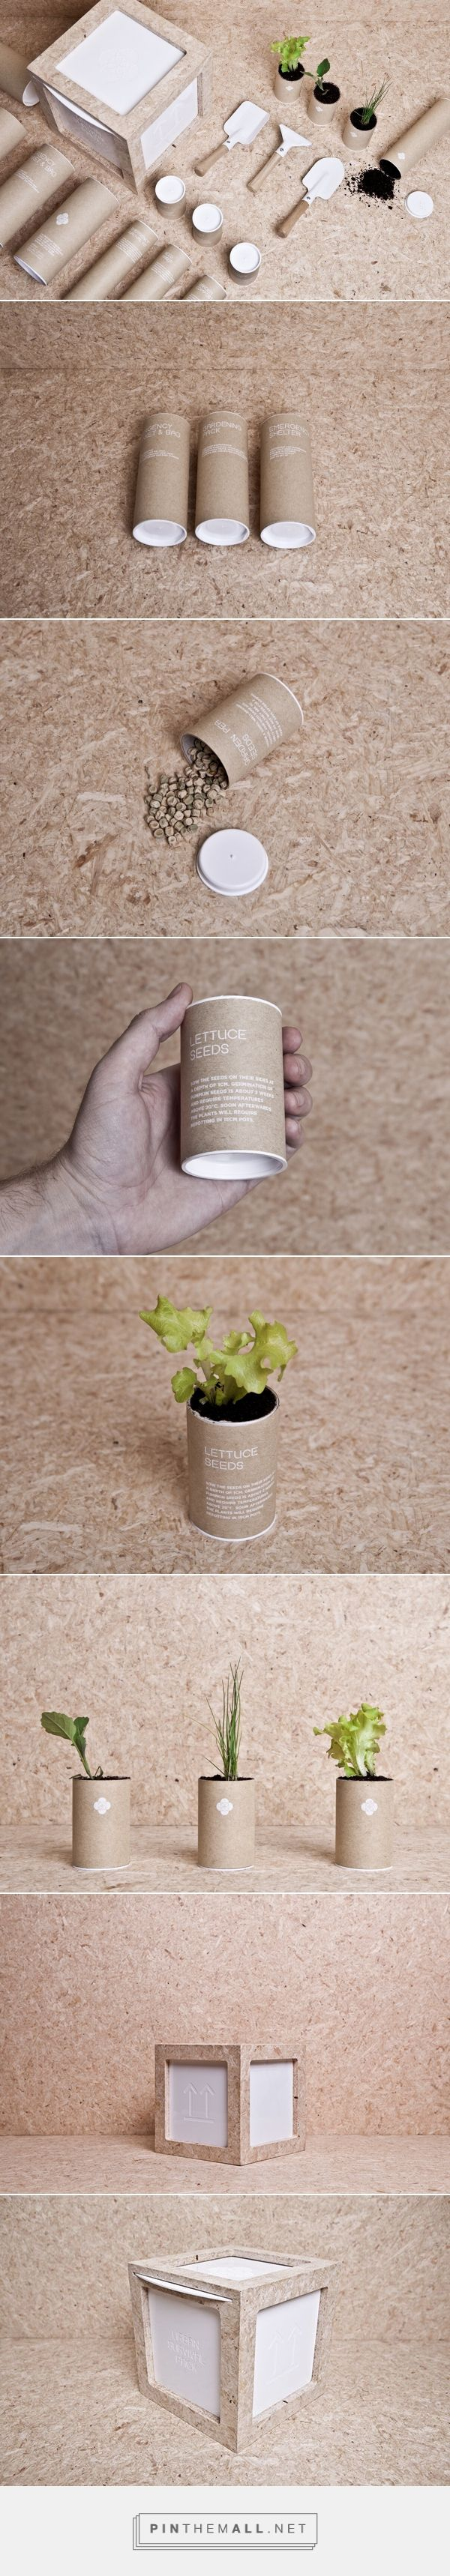 Urban Survival Pack // Ryan Romanes / packaging